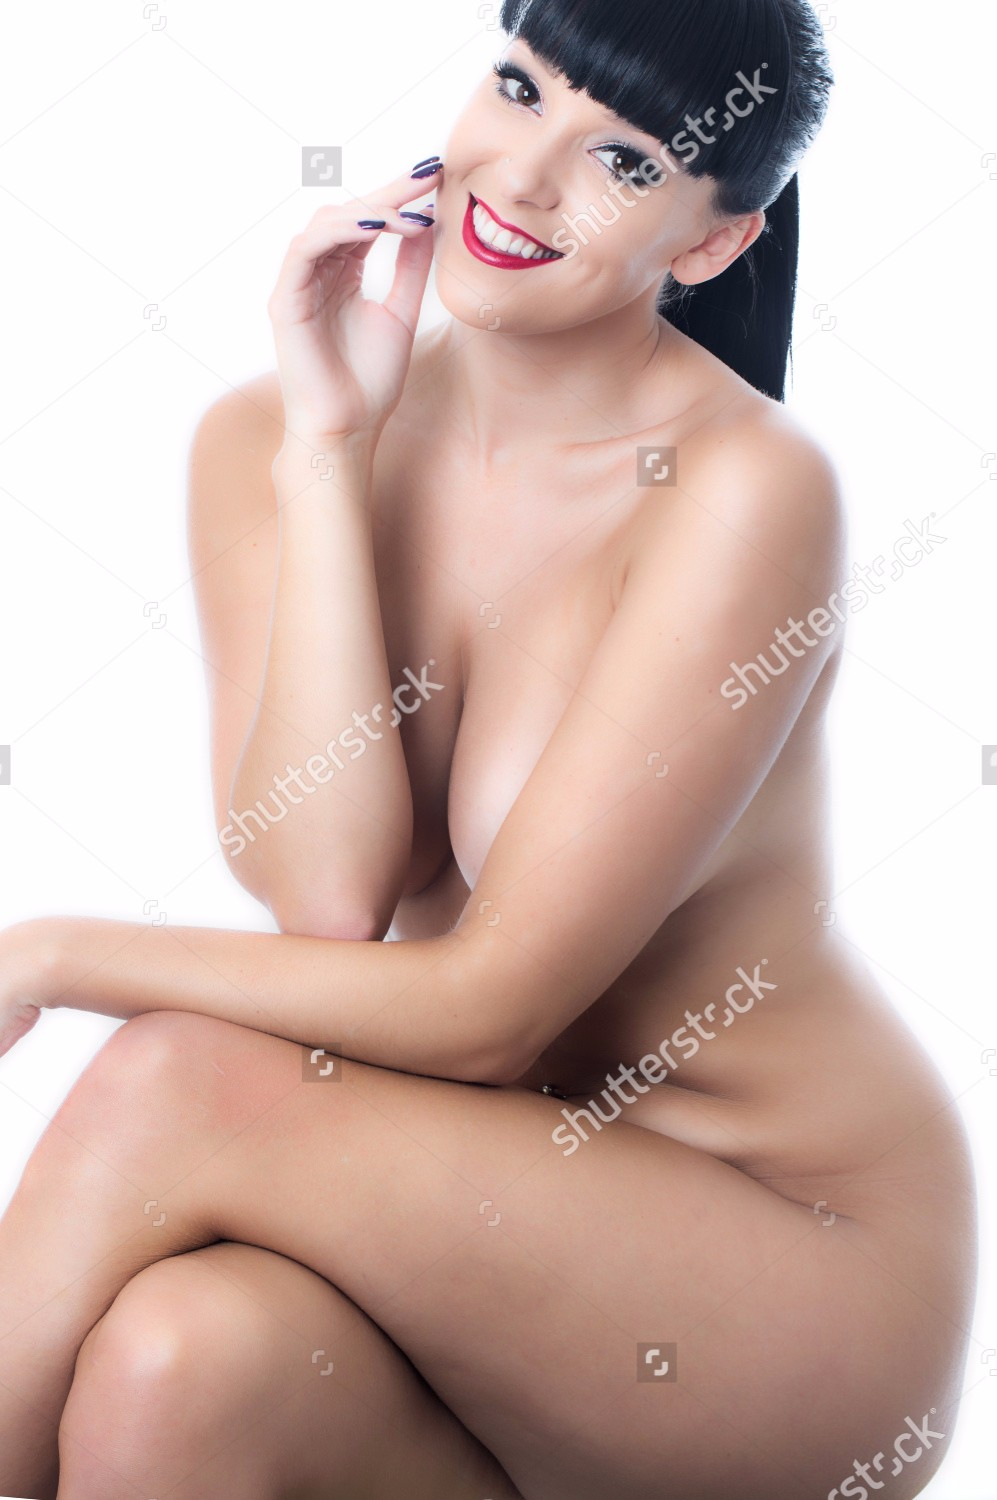 stock-photo-nude-young-lady-sitting-on-a-stool-163722746.jpg